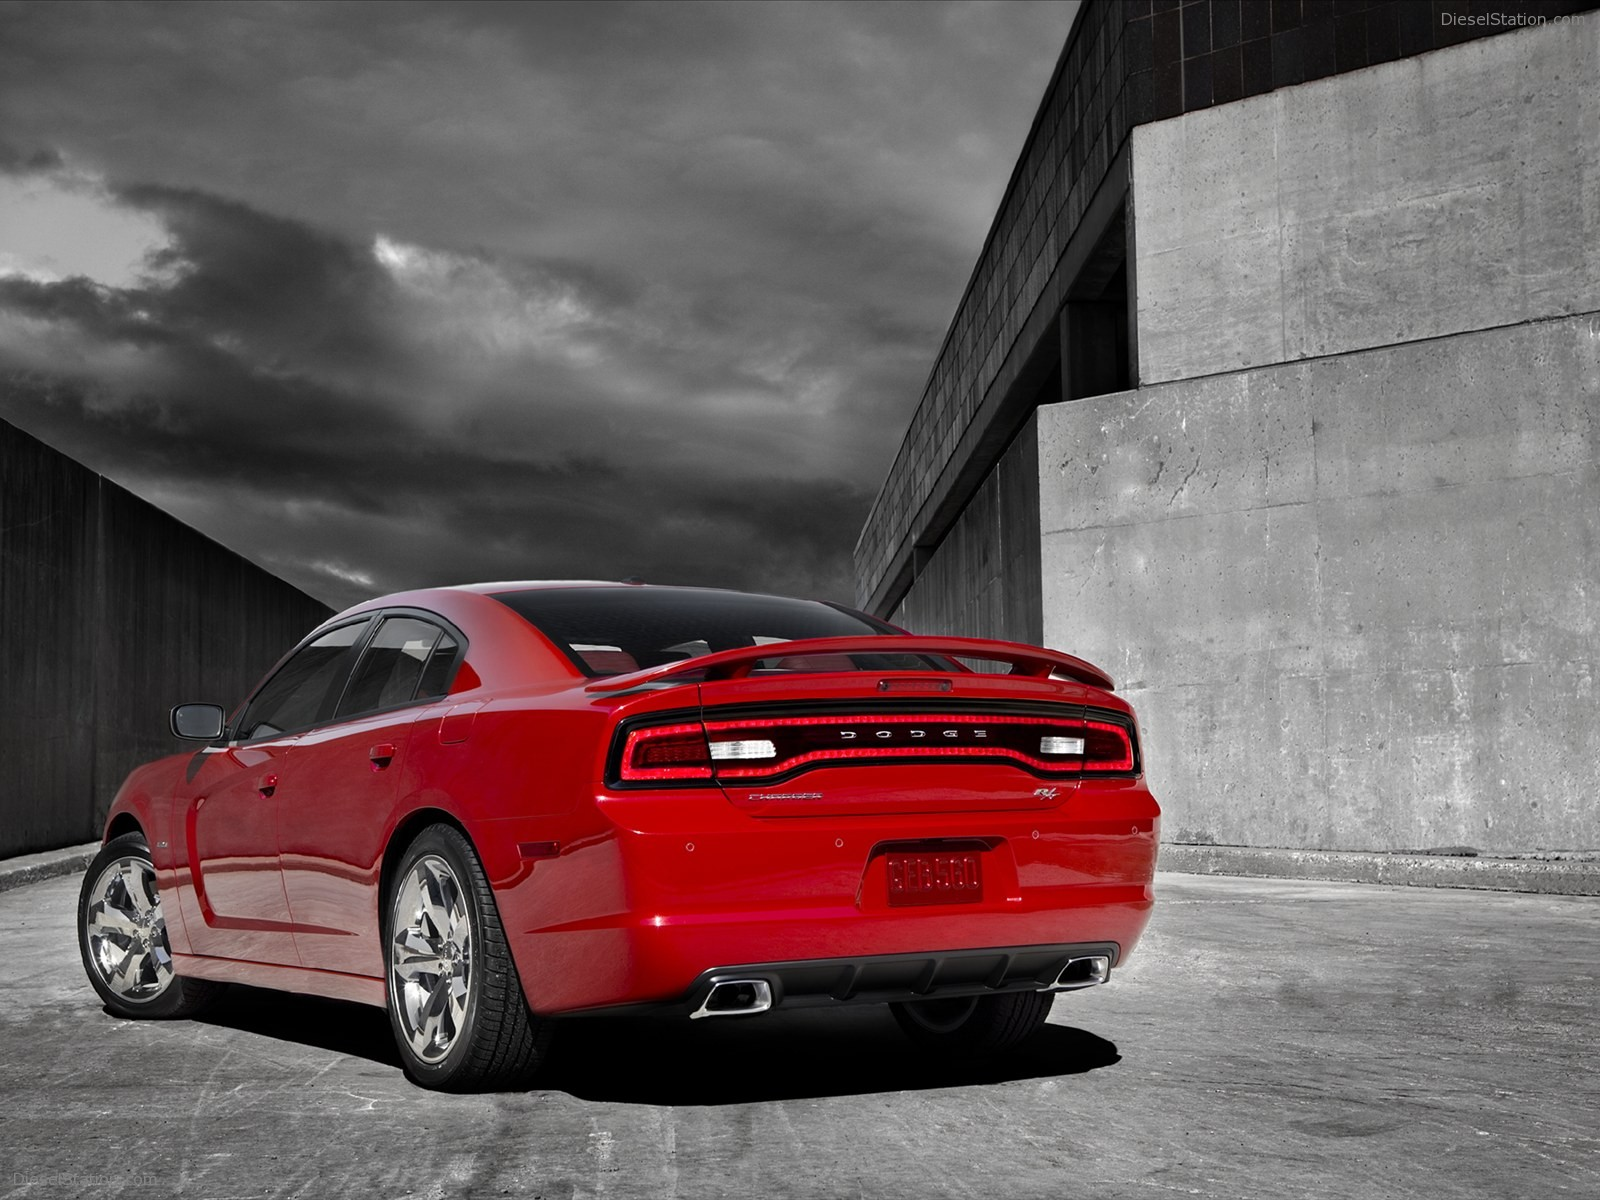 http://3.bp.blogspot.com/-qsmlTBfQ-1I/UV3XyT_vdII/AAAAAAAANYM/XWeqNm3f8So/s1600/2012+Dodge+Charger+RT+Wallpapers6.jpg